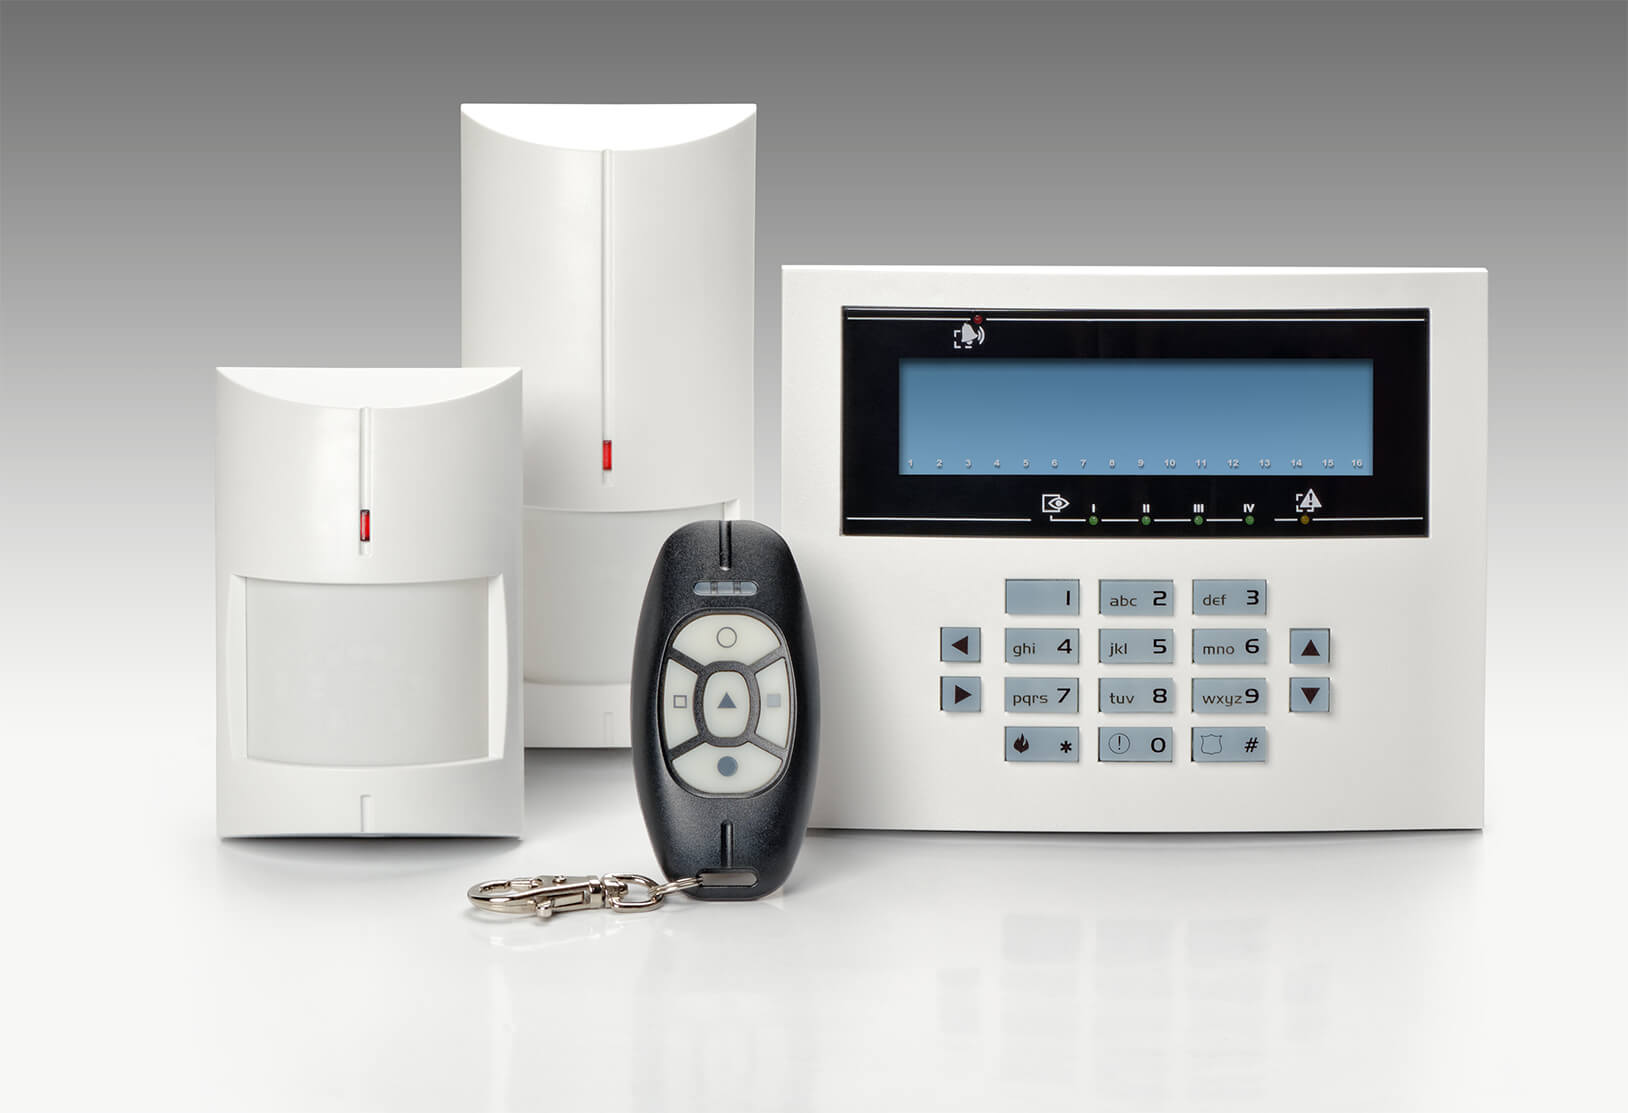 Business & Residential NACOSS Approved Burglar Alarms In Hackney N16 - Local Hackney N16 security company.Call 02078872244 - Dedicated to Safety & Security. Companies, shops and homes ..